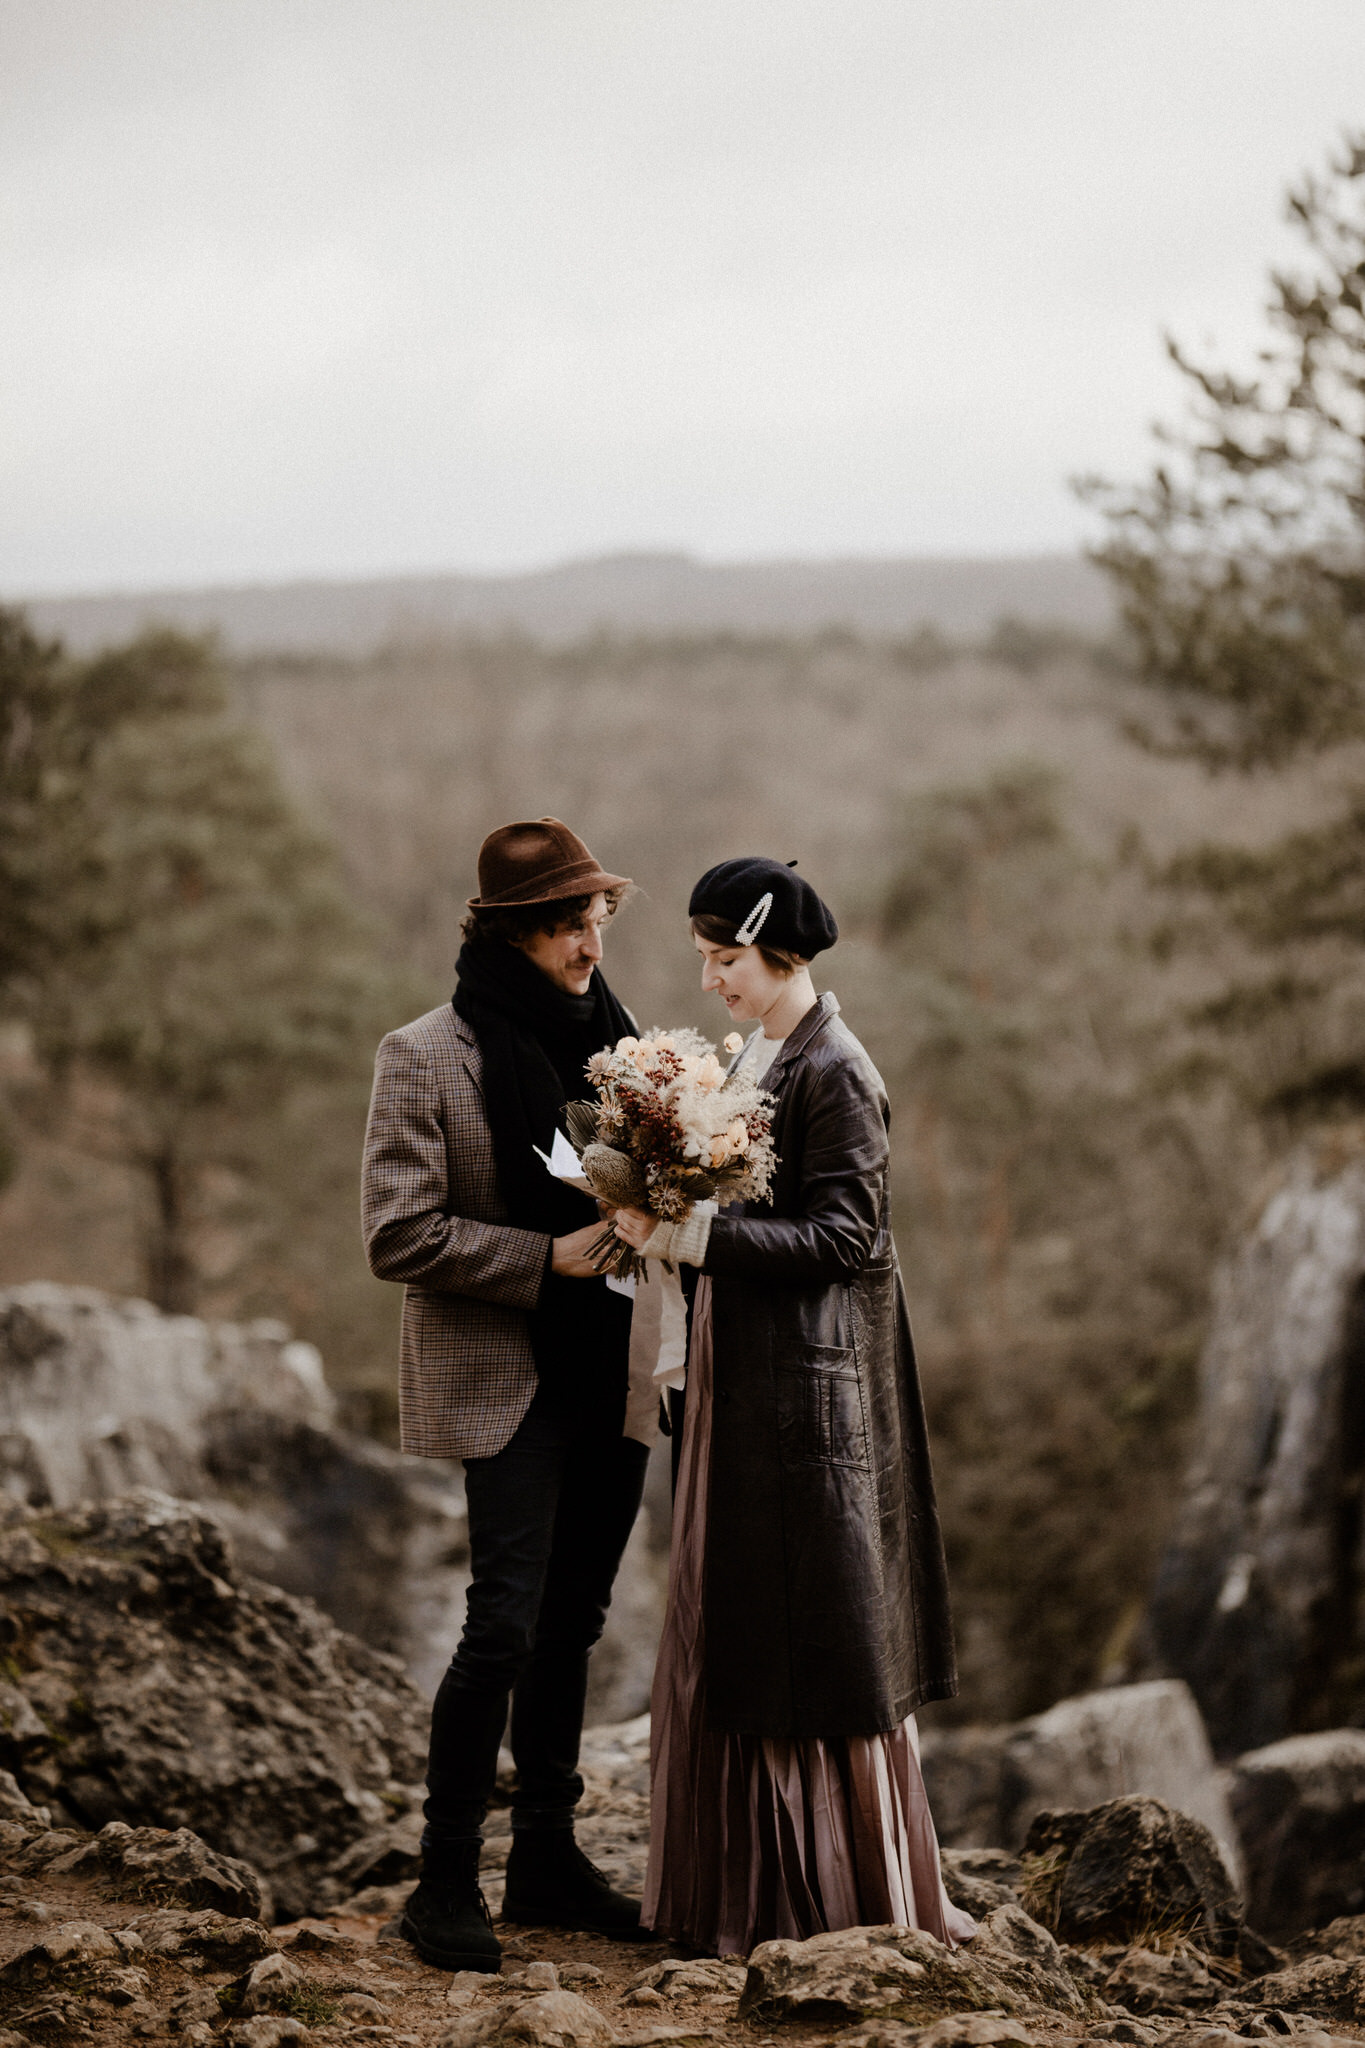 A lovely view of a couple eloping in the foresty hills of the Ardennes, while holding their flowers